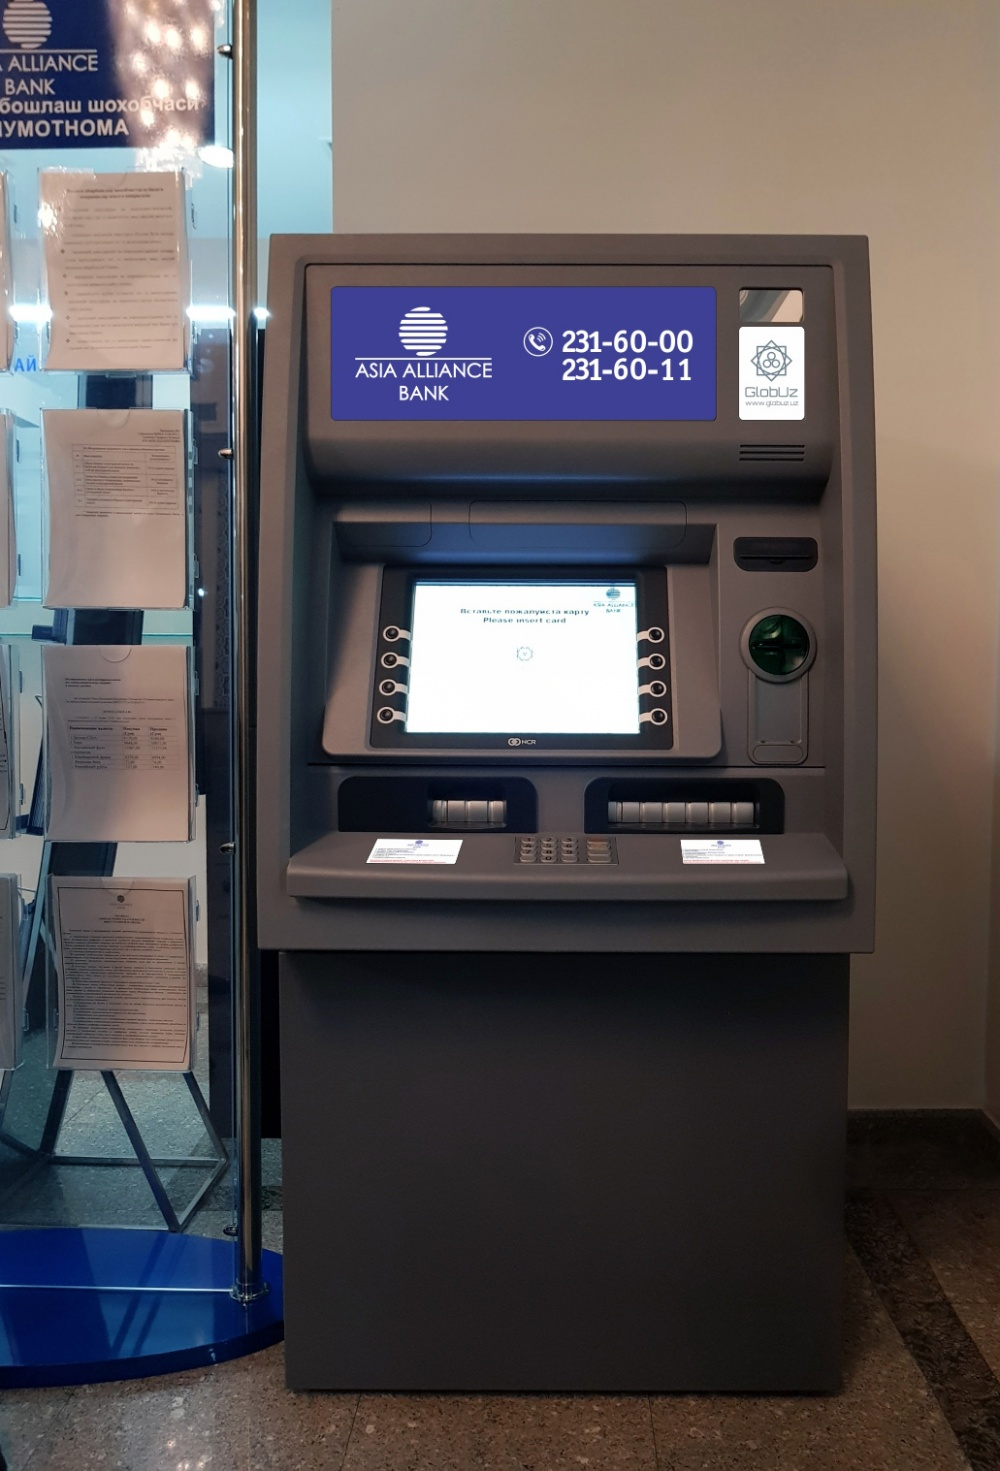 For the first time, multicurrency ATM presented in Uzbekistan!